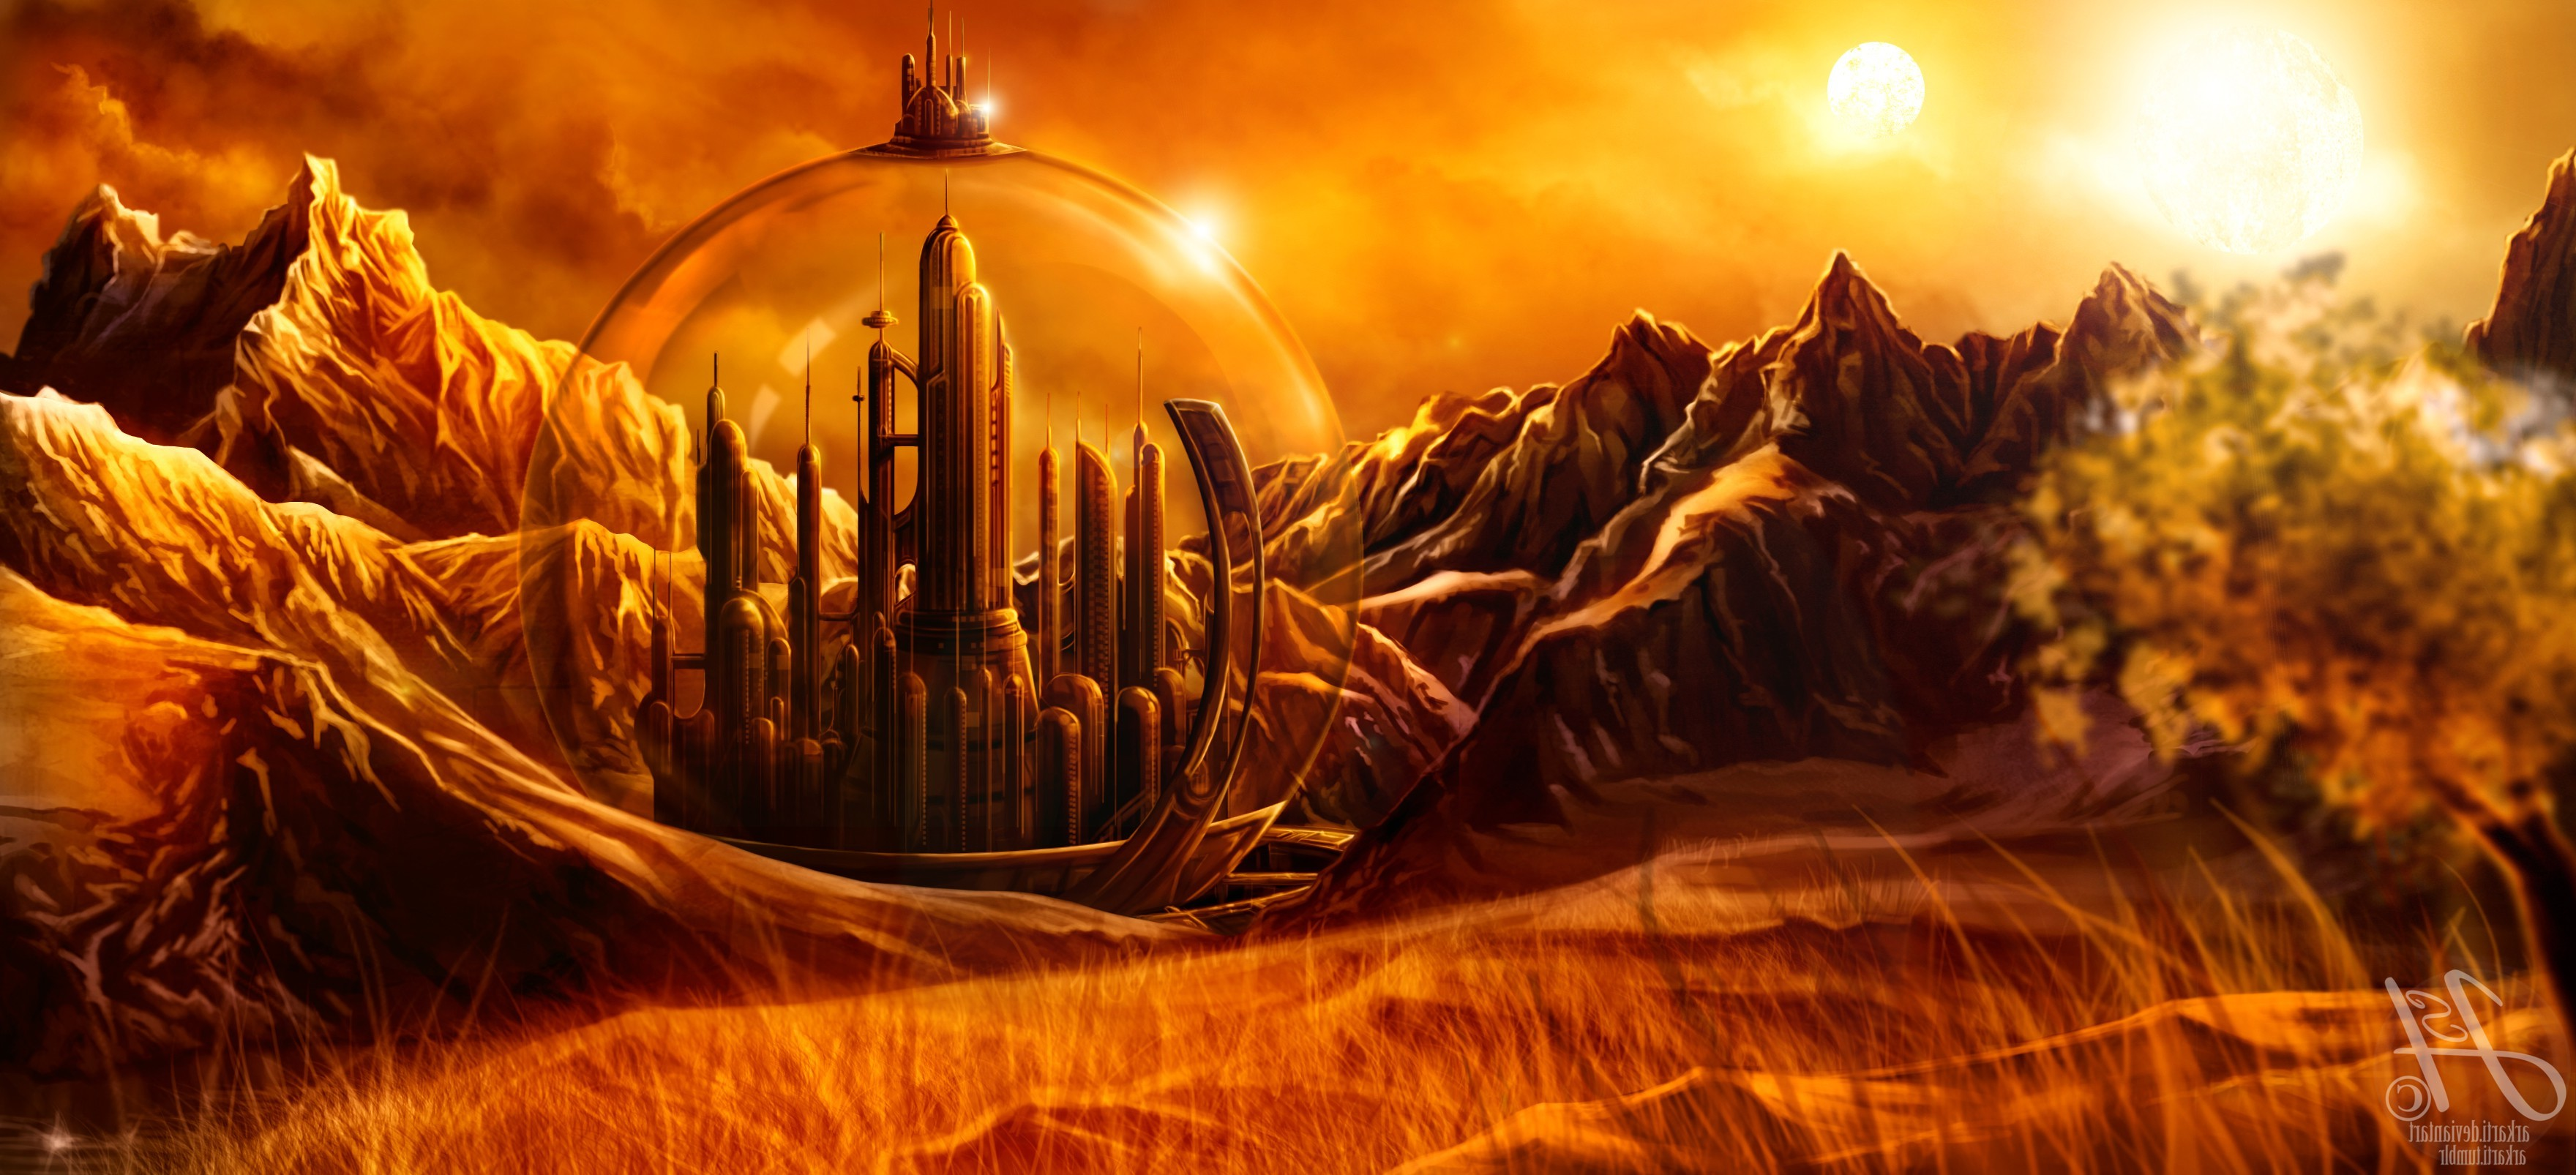 Hd Painting Wallpapers Download Doctor Who The Doctor Gallifrey Wallpapers Hd Desktop